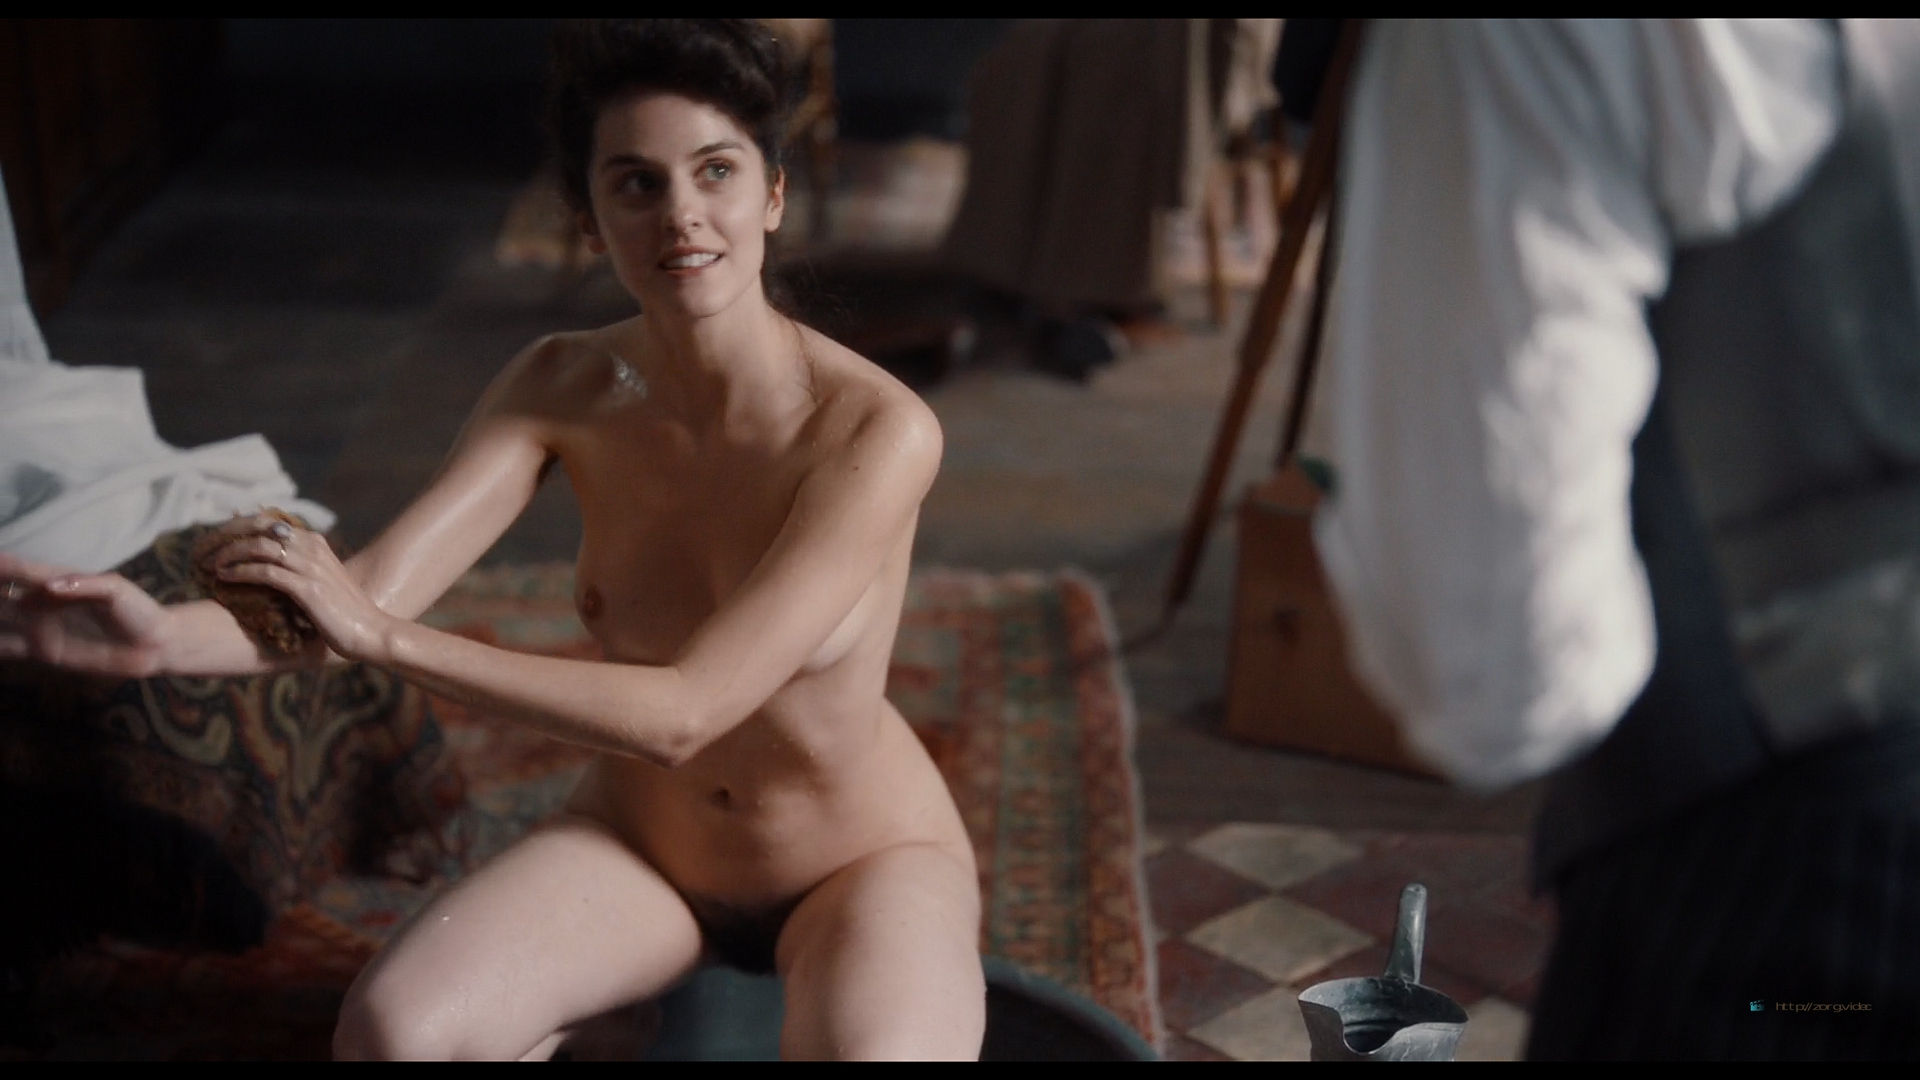 Noemie Merlant nude full frontal Camelia Jordana, Amira Casar and others nude - Curiosa (2019) HD 1080p Web (13)